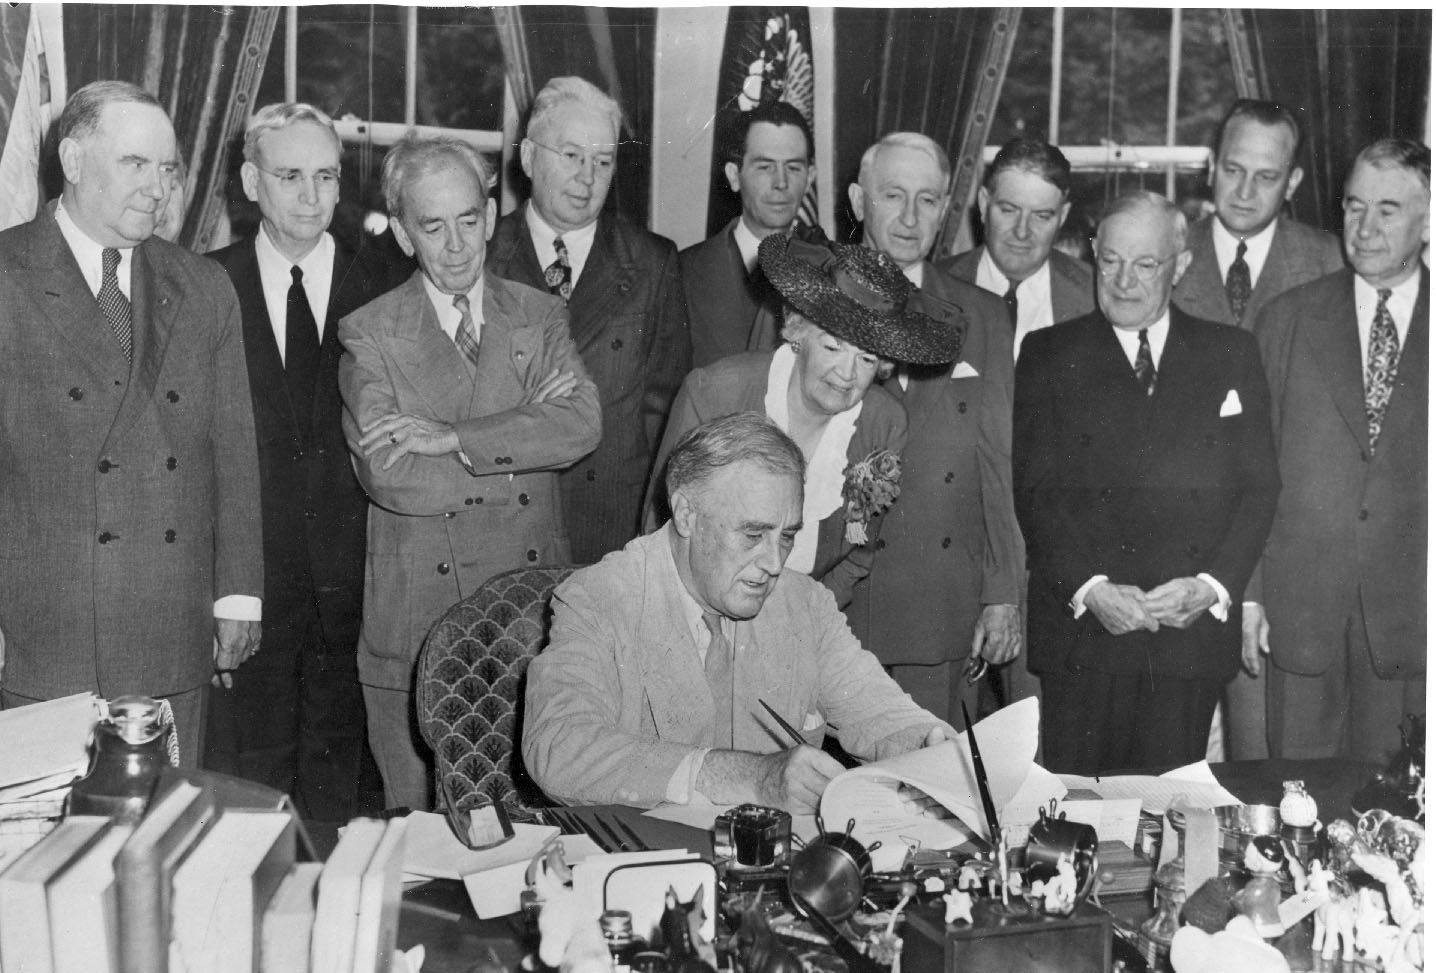 More details President Roosevelt signs the G.I. Bill into law on June 22, 1944 in the Oval Office while others look on